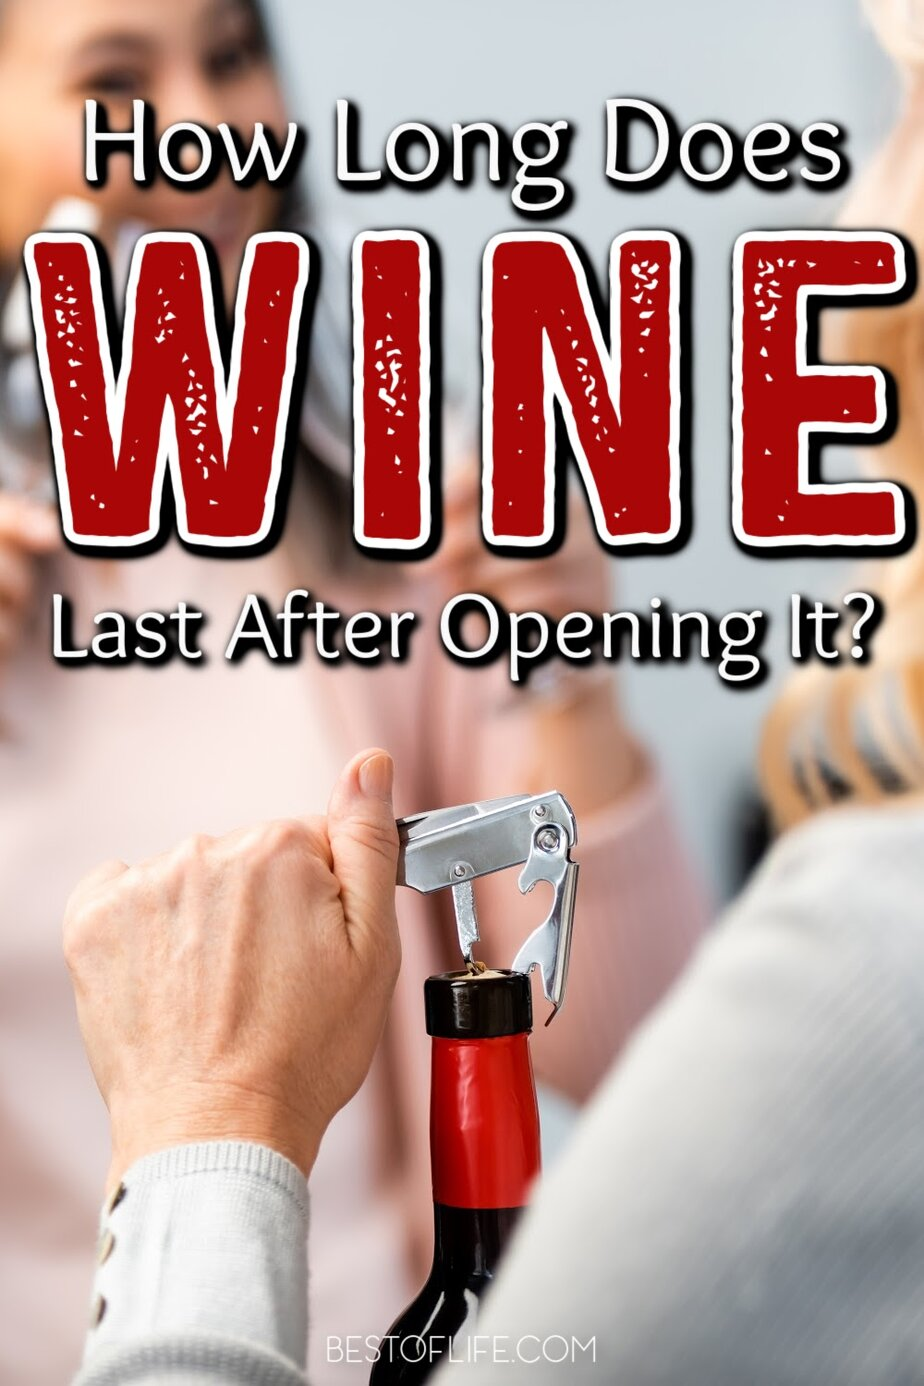 Regardless of how often you enjoy wine, knowing how long wine lasts after opening will help you enjoy them during their prime and never worry about wasting wine. Tips for Red Wine | Tips for White Wine | Opening Wine Without a Corkscrew | Wine Hacks | Wine Expiration Tips #wine #hacks via @thebestoflife